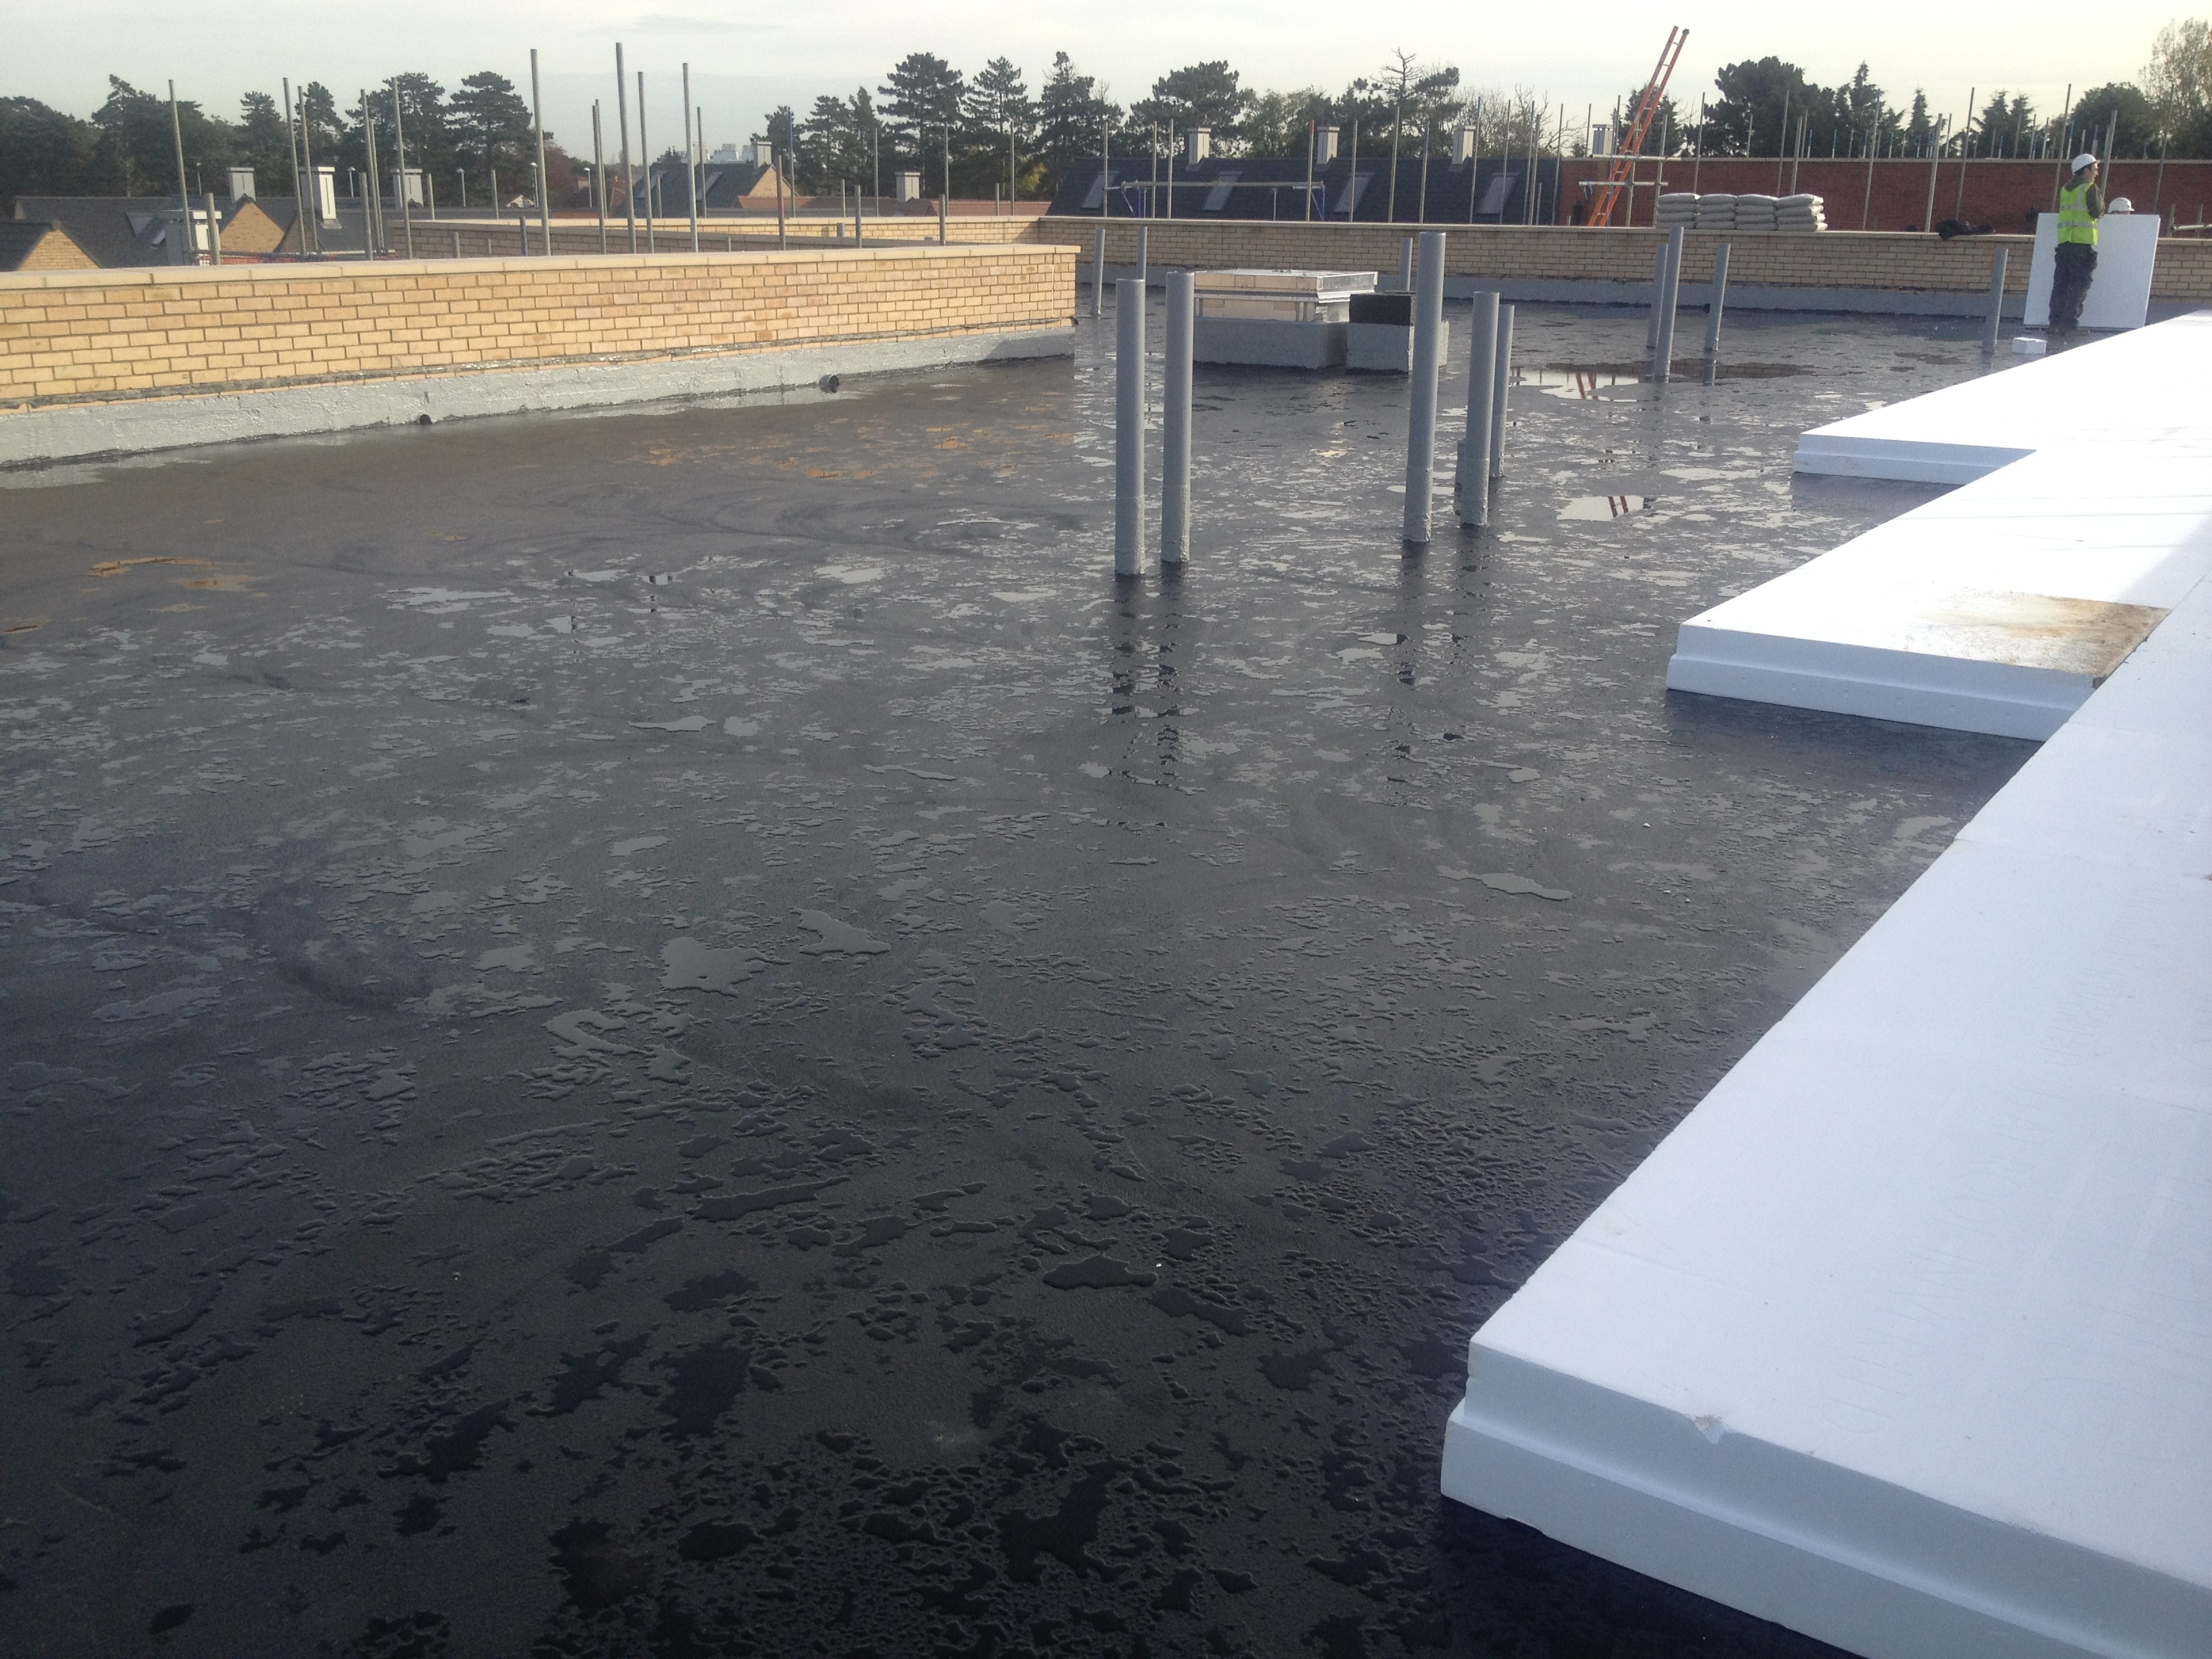 Flat Roof Waterproofing : Deckmaster bm flat roof waterproofing systems commercial